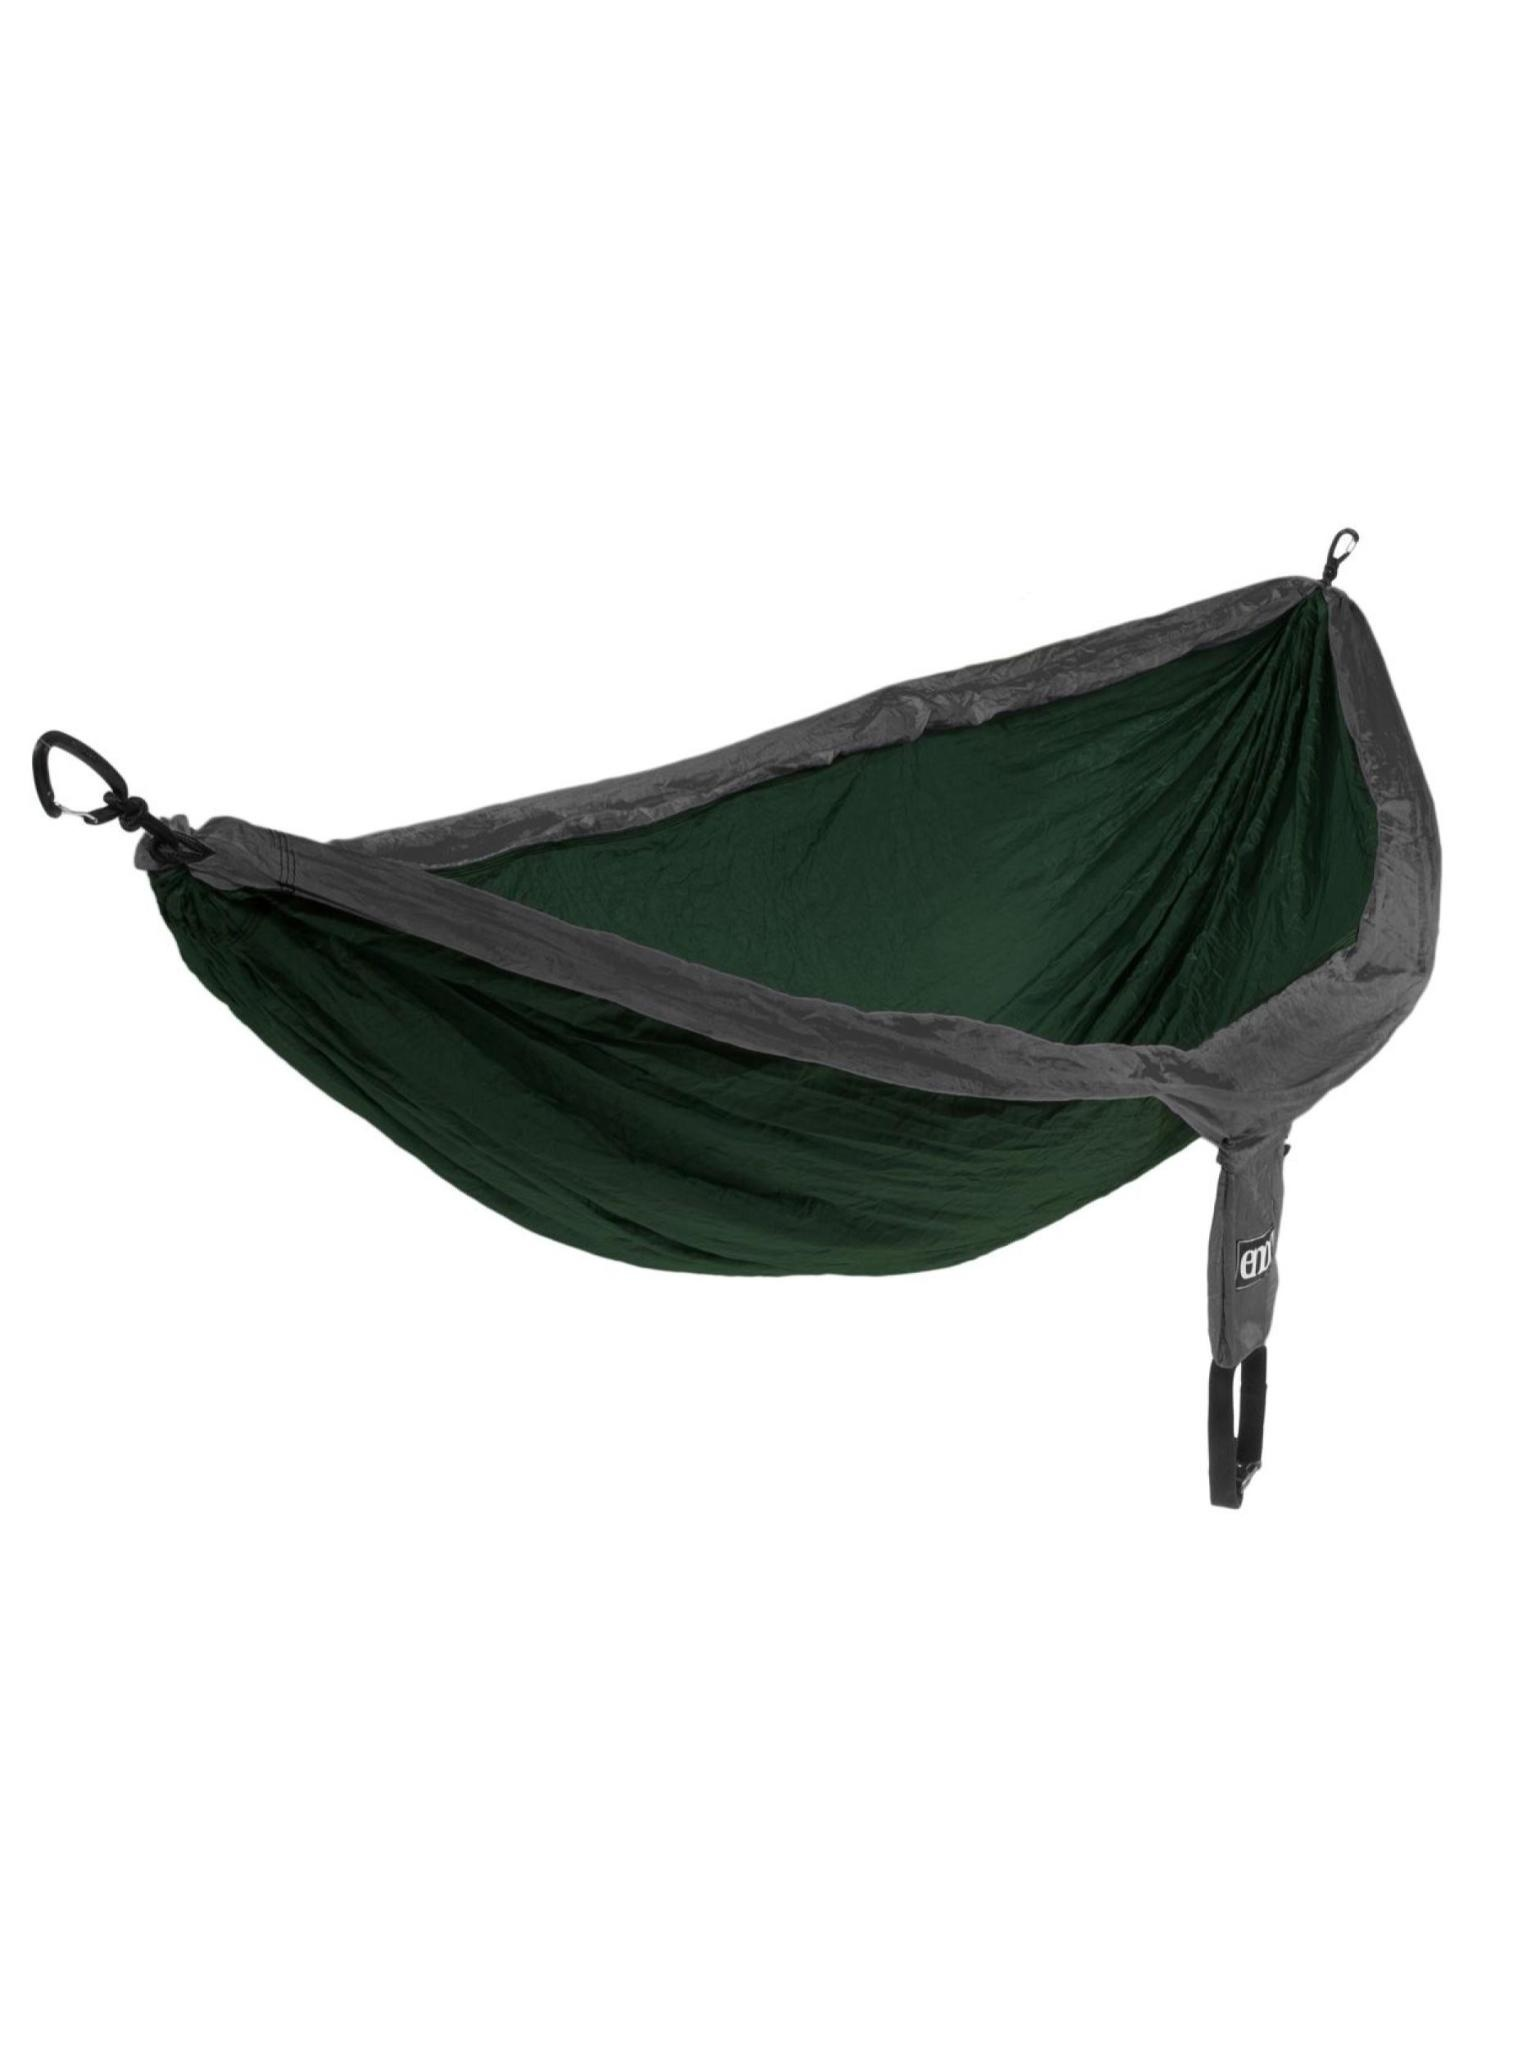 ENO DoubleNest Hammock Forest/Charcoal